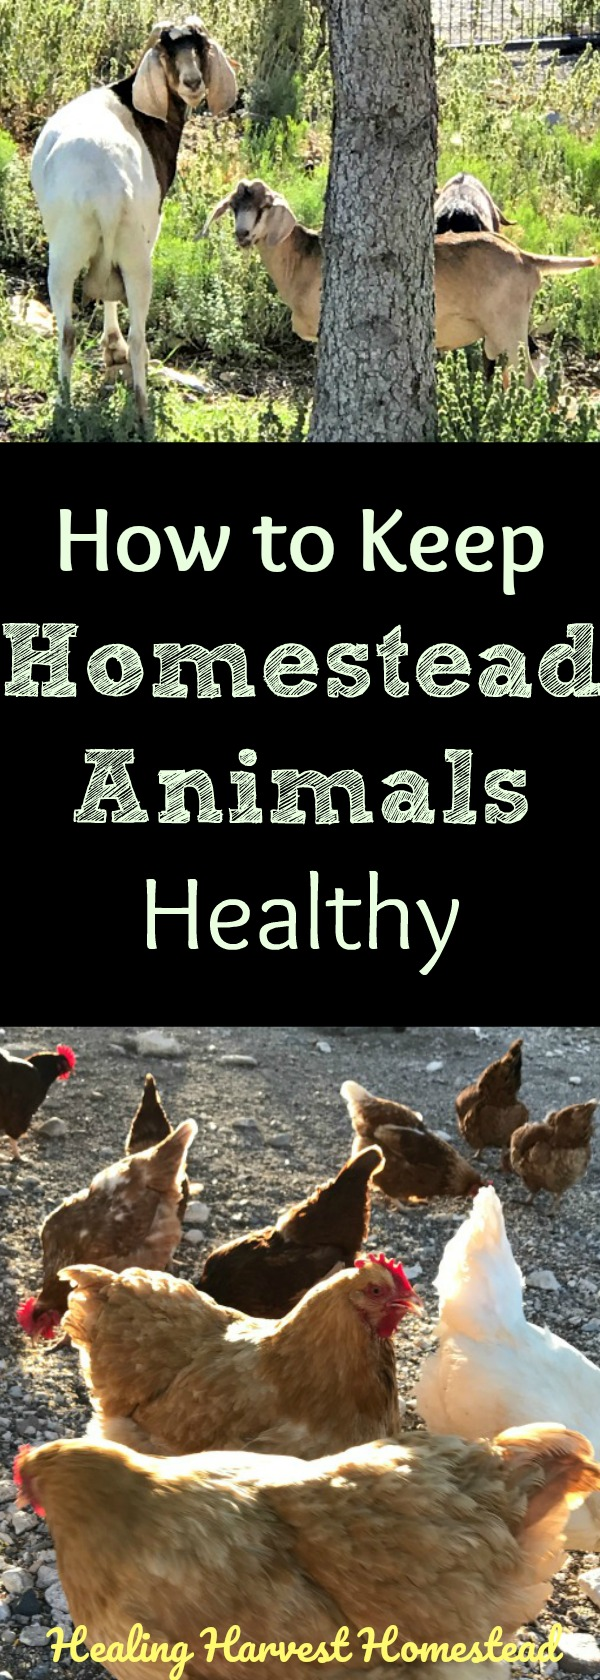 """Livestock-type animals and poultry have special health needs, and many veterinarians don't work on these """"specialty"""" animals. Here's how to keep your chickens, goats, and rabbits healthy, and what items you should keep in your pet medical emergency kit...just in case. Advice from experienced experts about homestead animal care and health."""